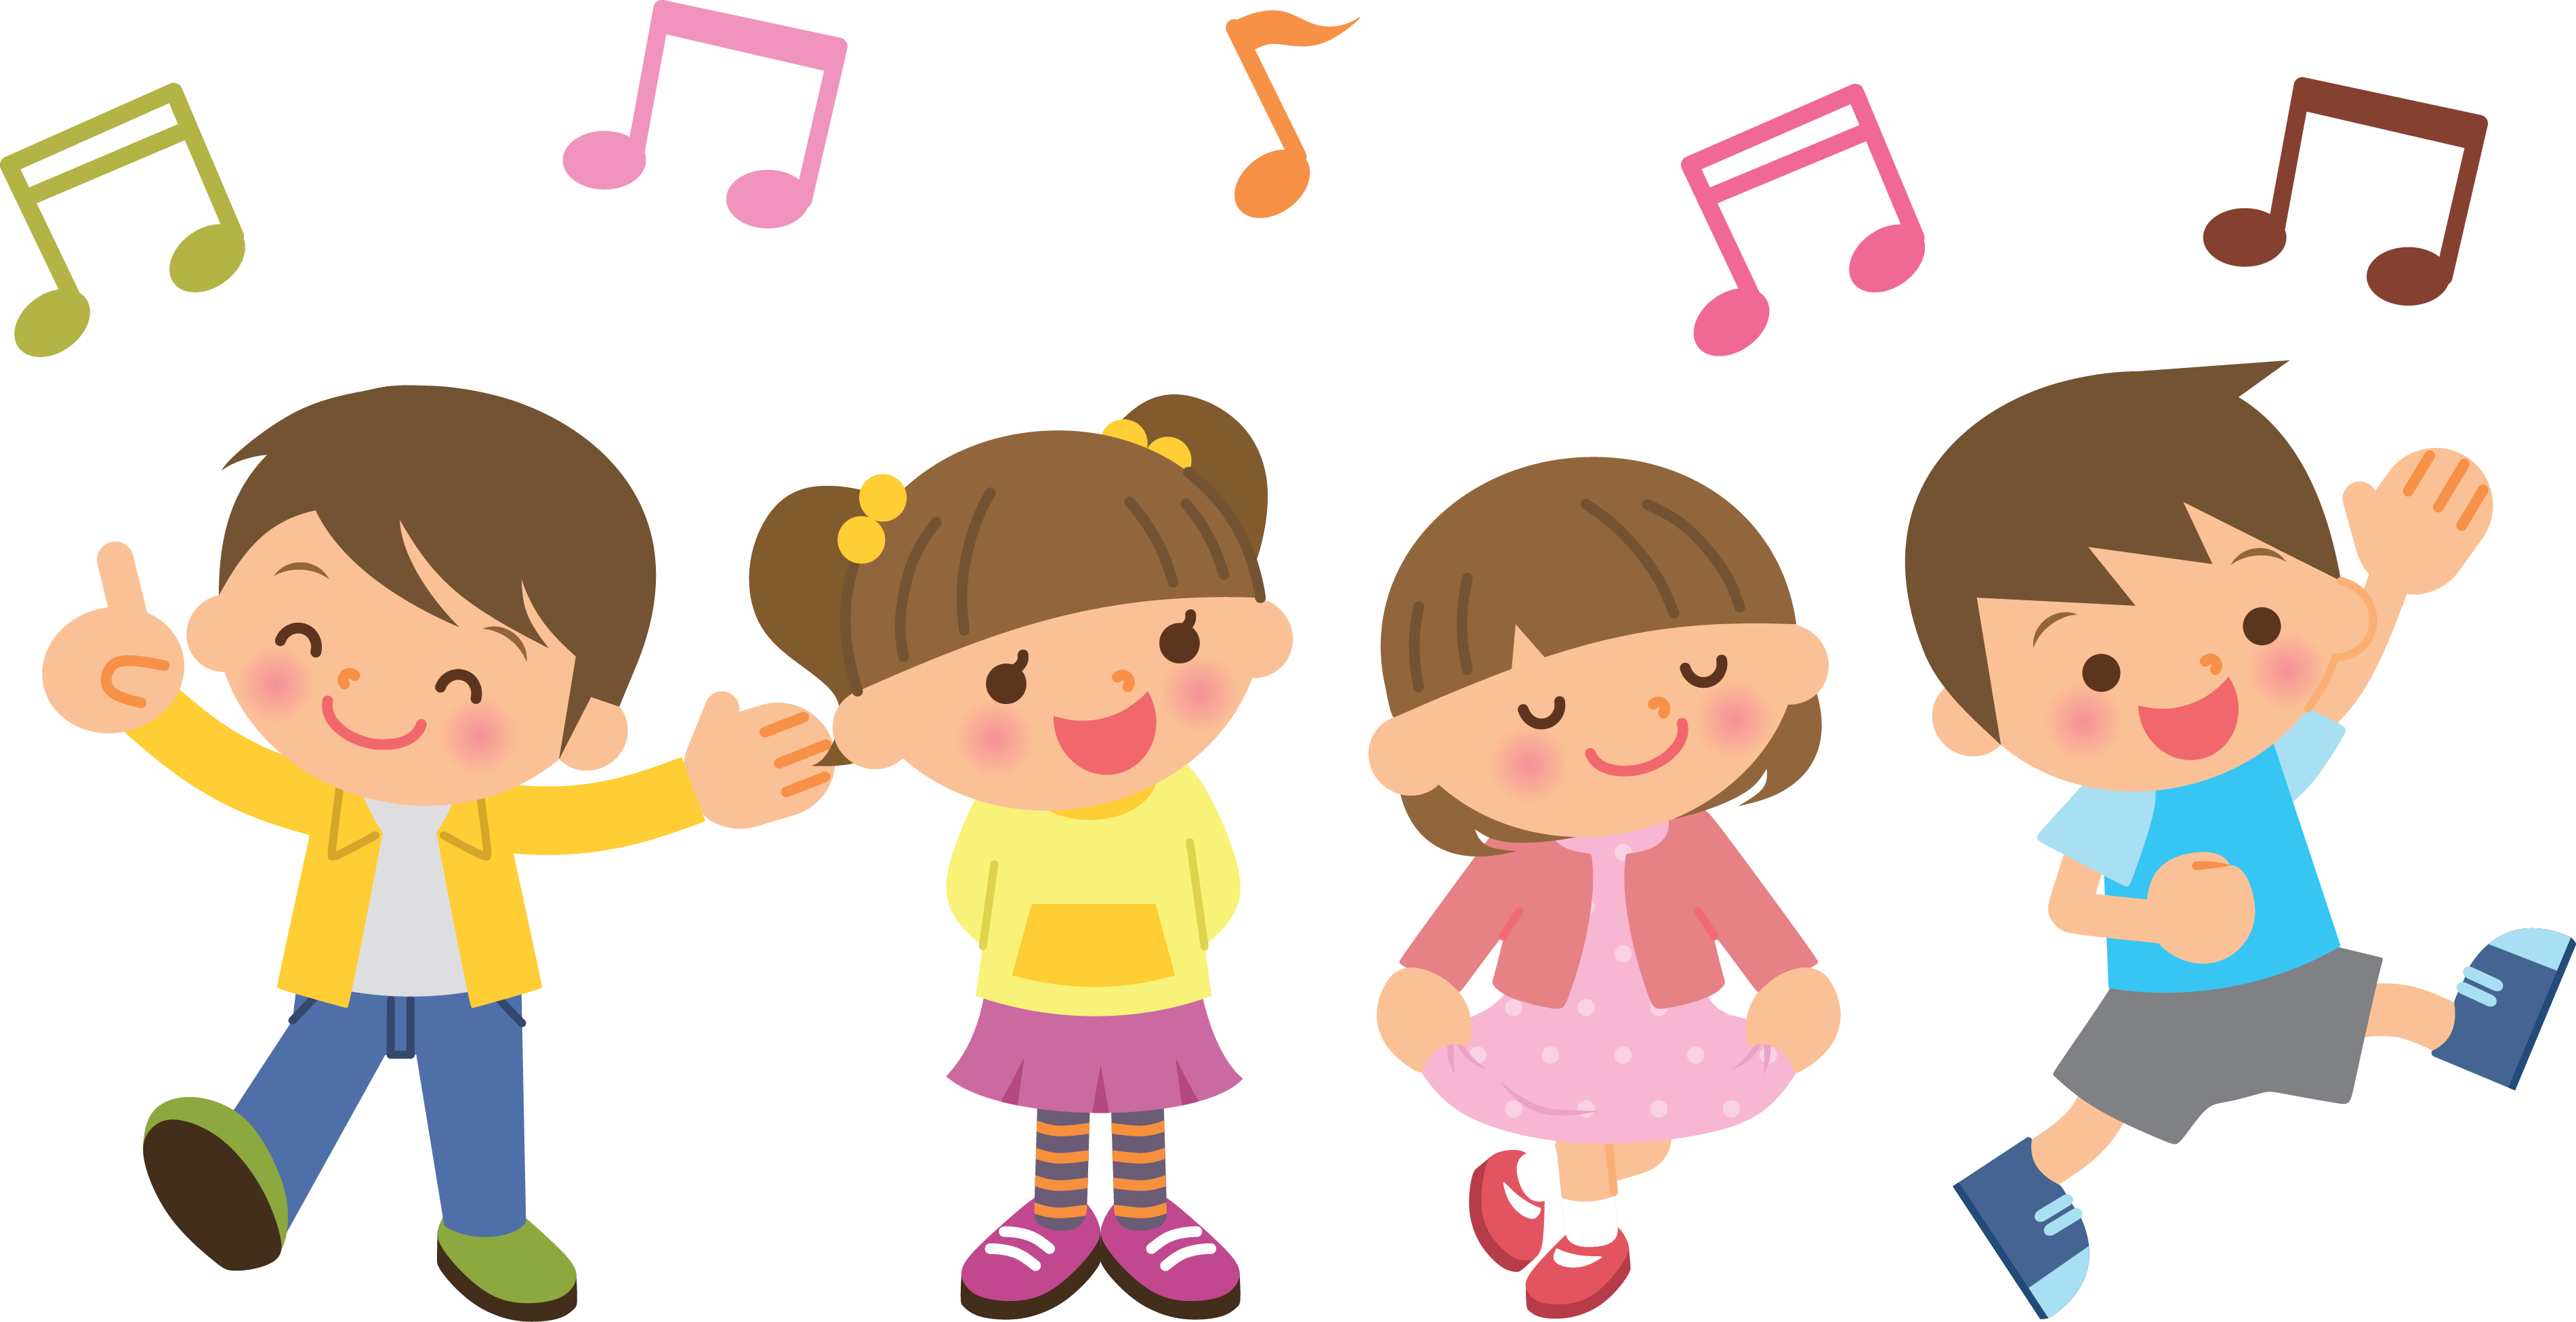 Choir scholars clipart picture black and white stock Children singing clipart clipart images gallery for free download ... picture black and white stock